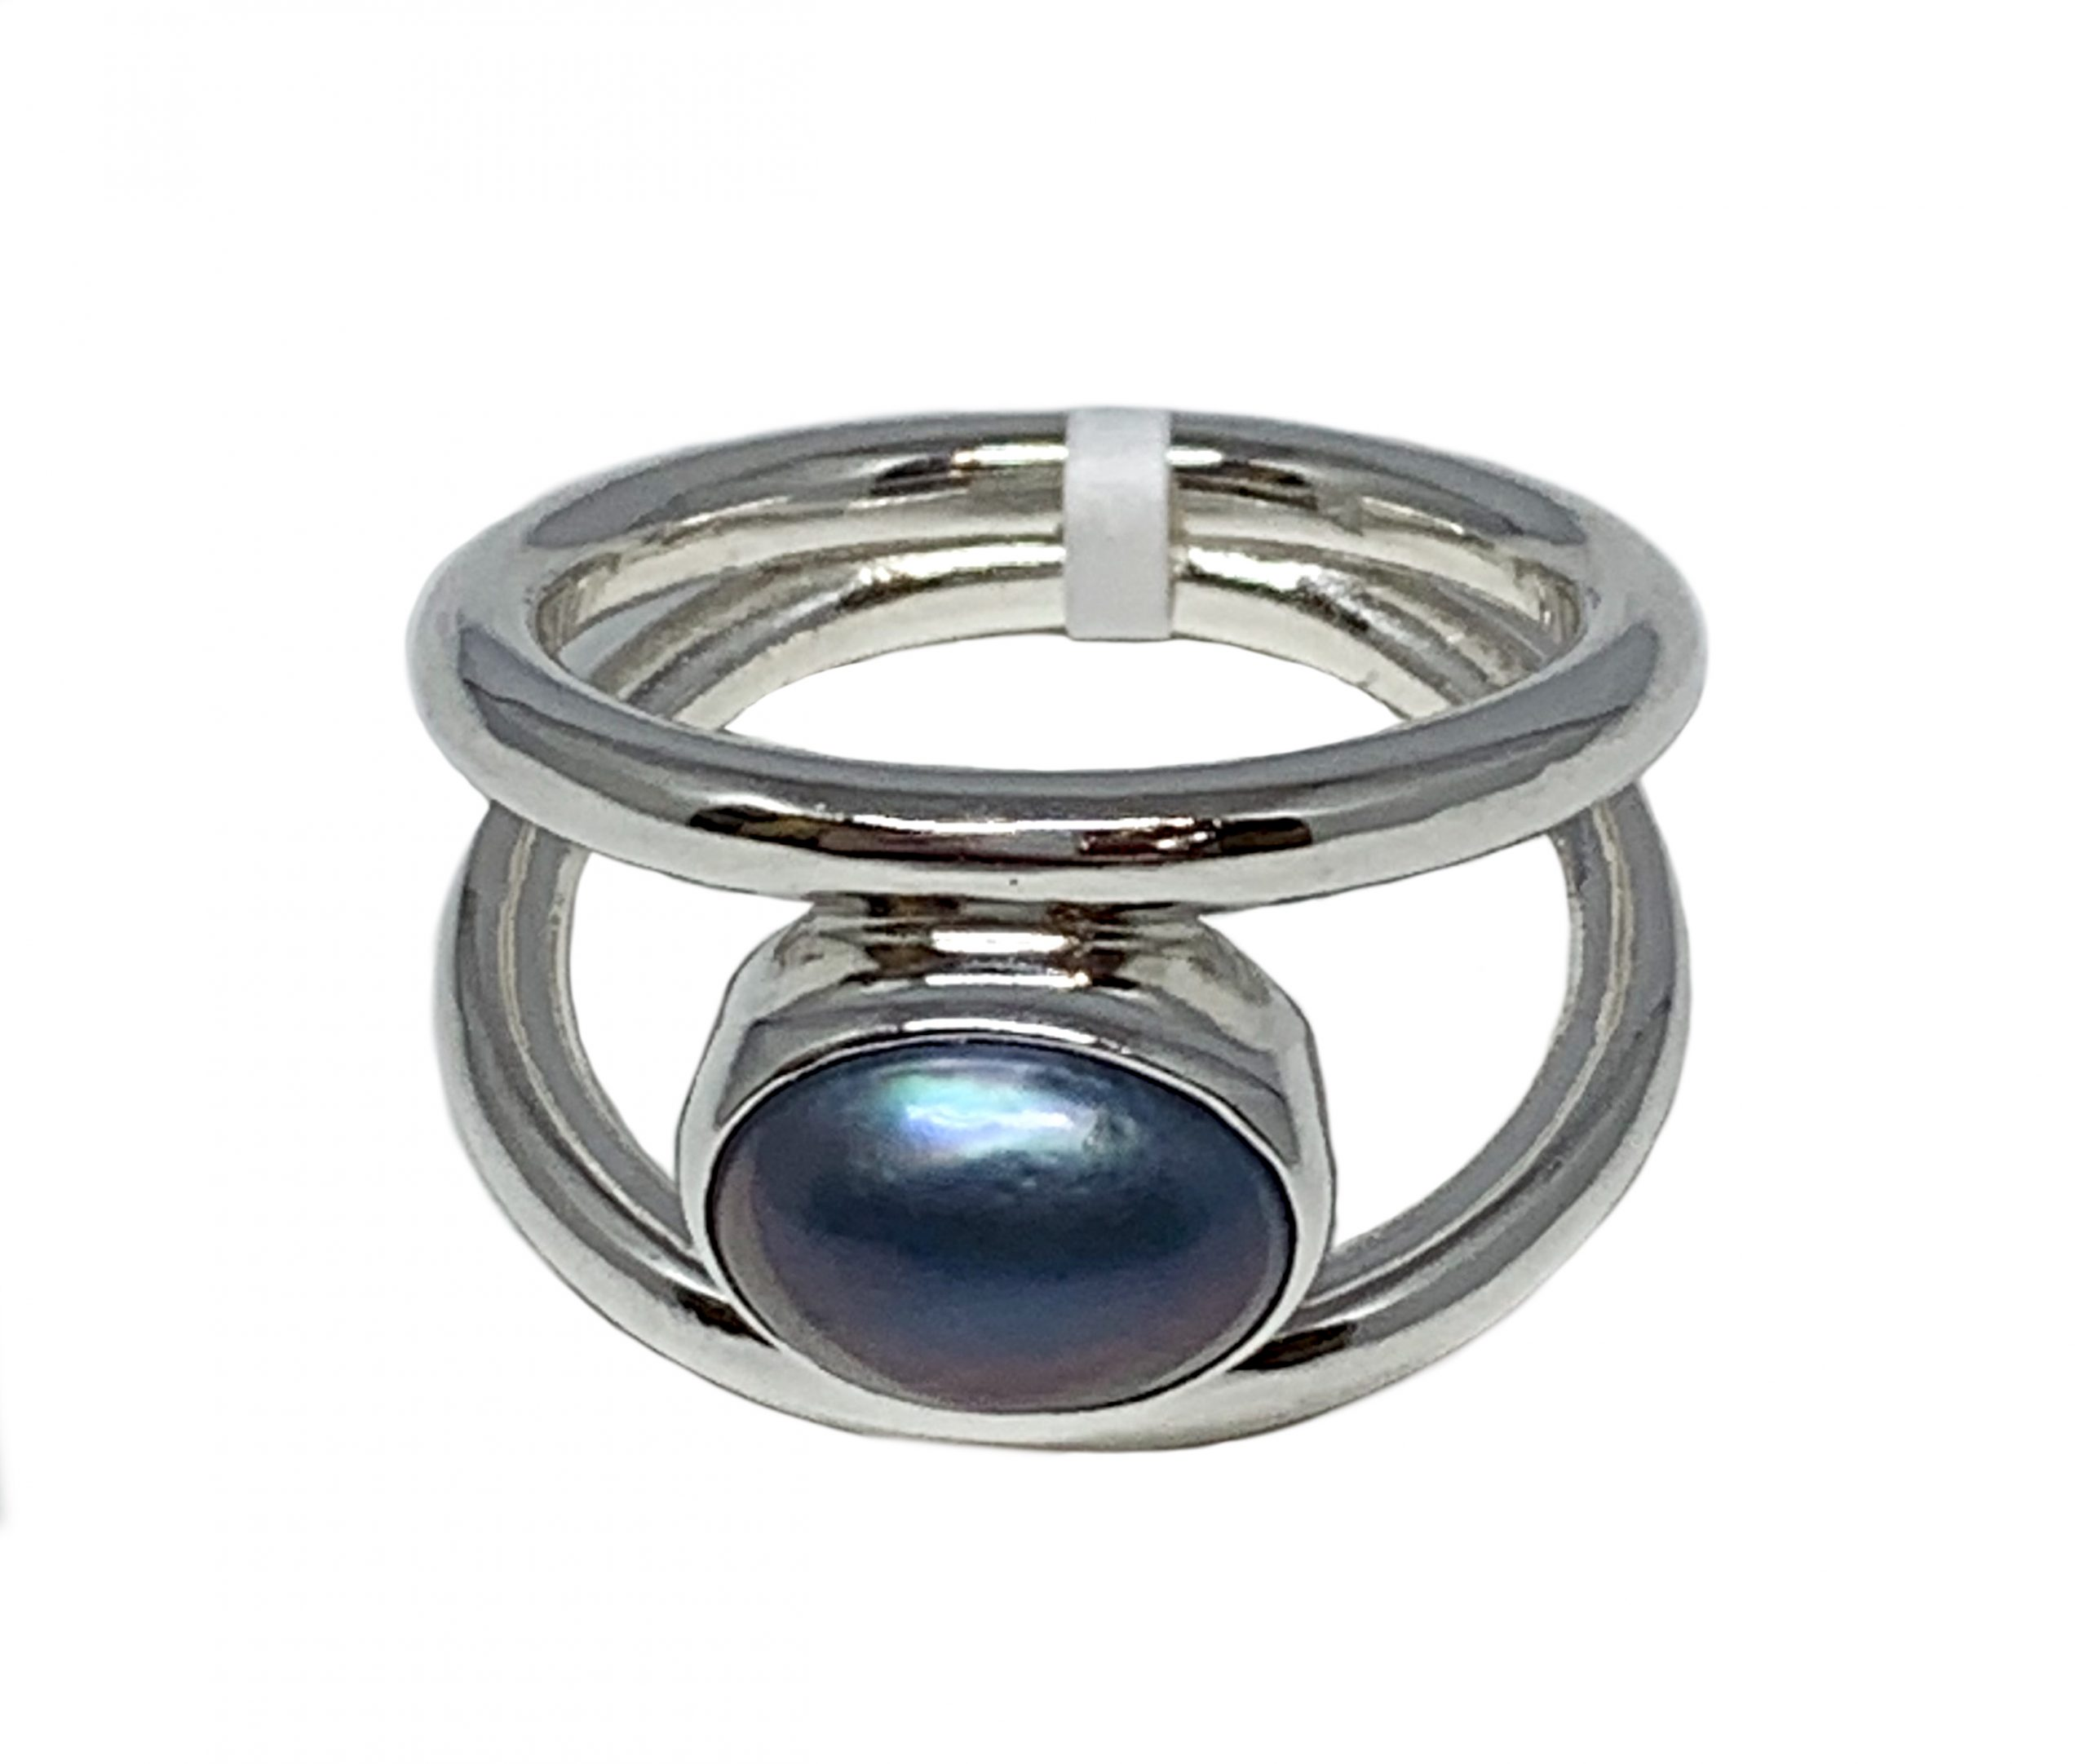 Sterling silver and 1.5 ct Tahitian pearl ring by A&R Jewellery | Effusion Art Gallery + Cast Glass Studio, Invermere BC